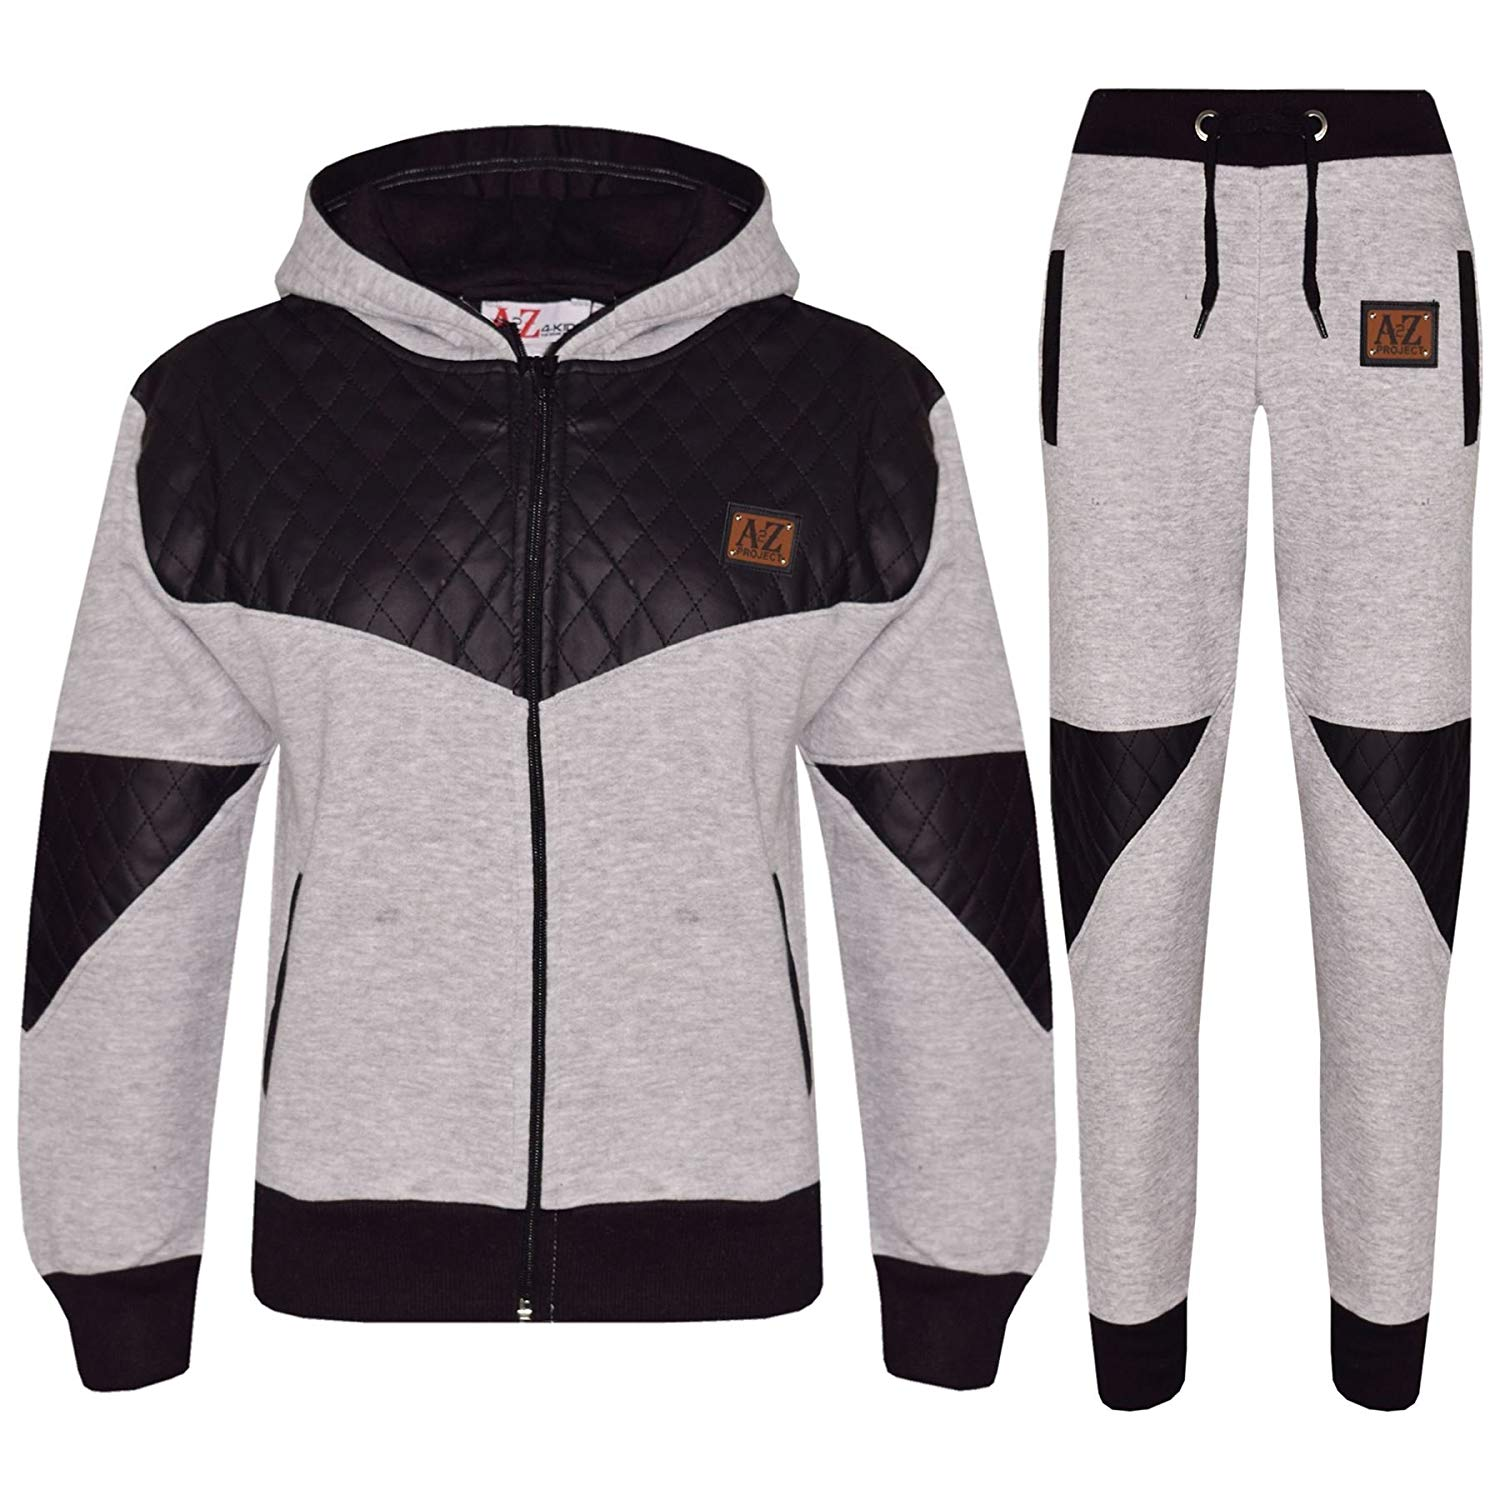 Kids Boys Girls Tracksuit NYC Deluxe Edition Badged Hoodie /& Bottom Jogging Suit